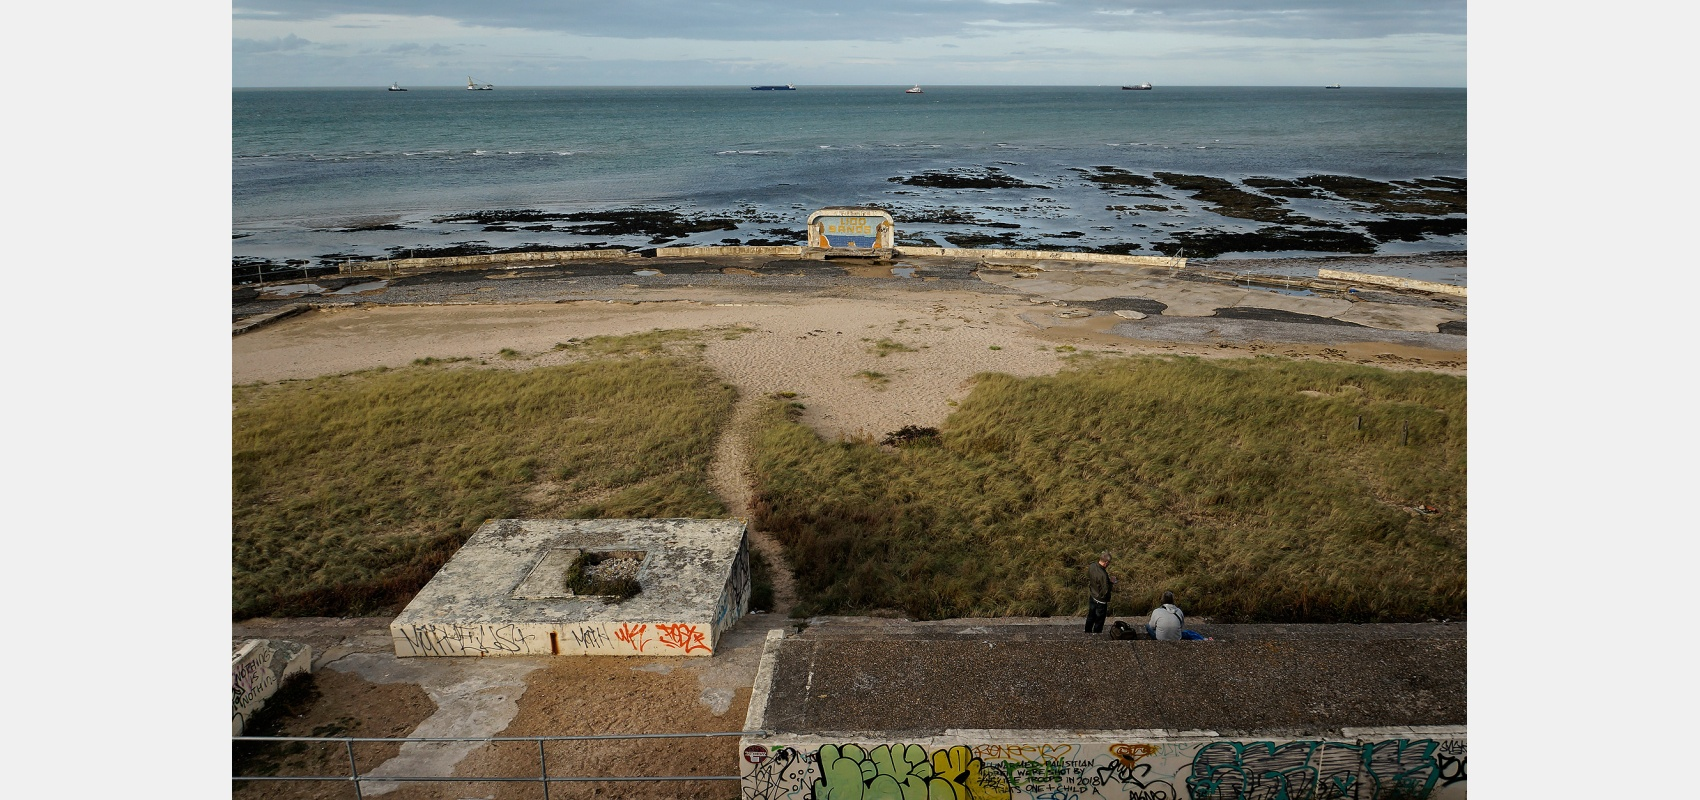 Coastal series. Places and location. Lido Sands, Margate, disused art deco lido built by John Henry Iles